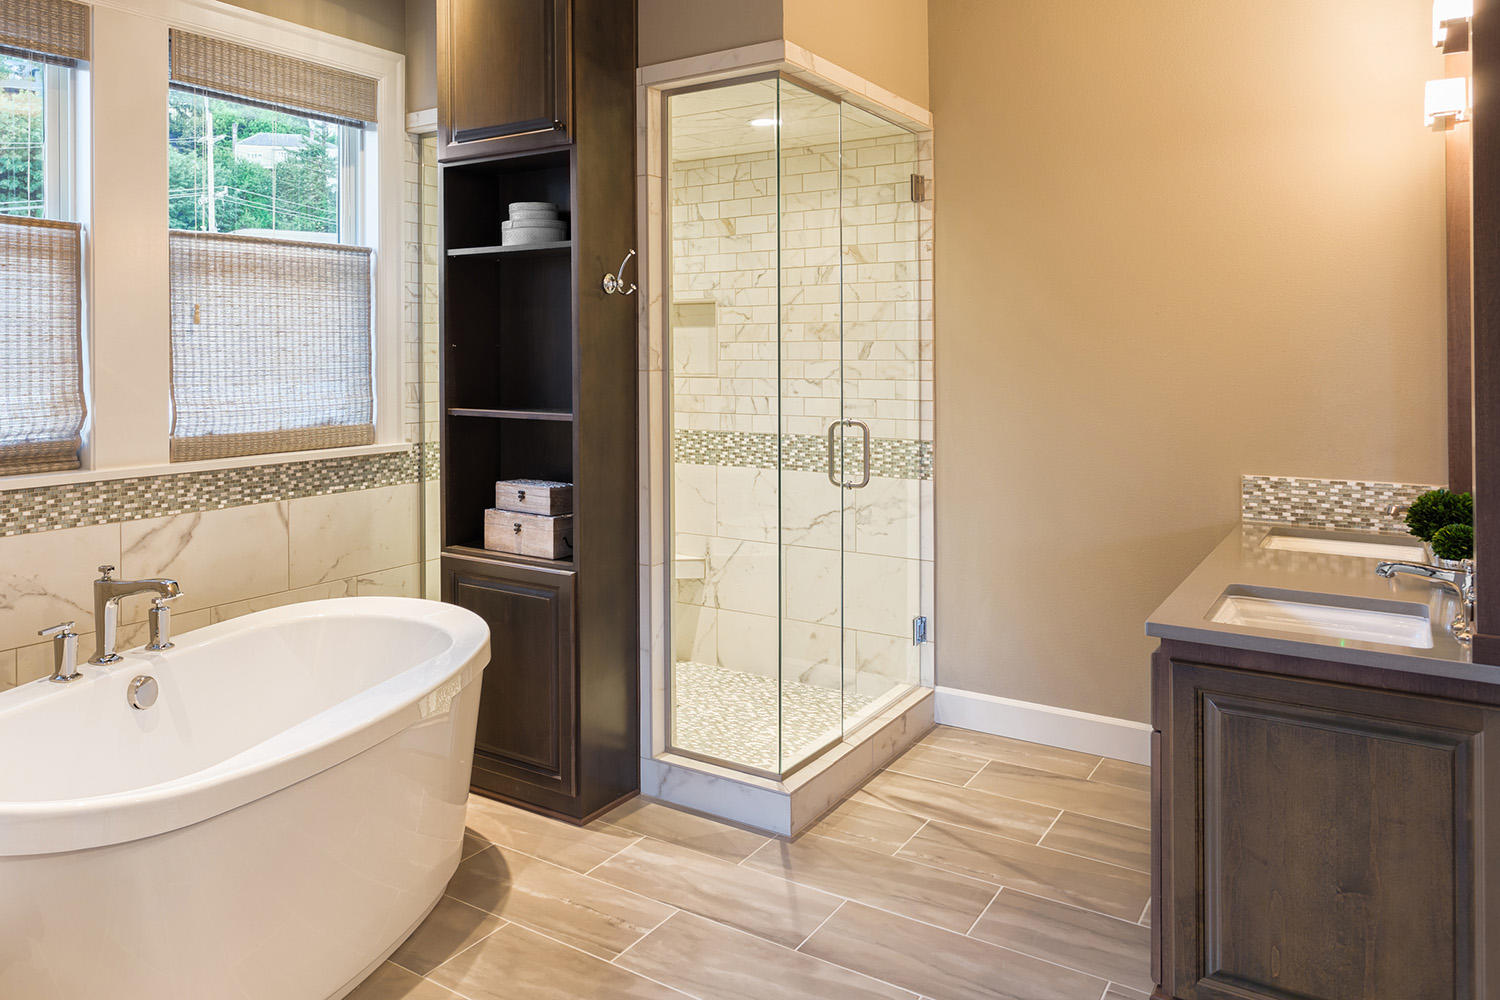 Bathroom Remodeling Duluth Mn gordy johnson construction inc. in duluth, mn - (218) 349-8